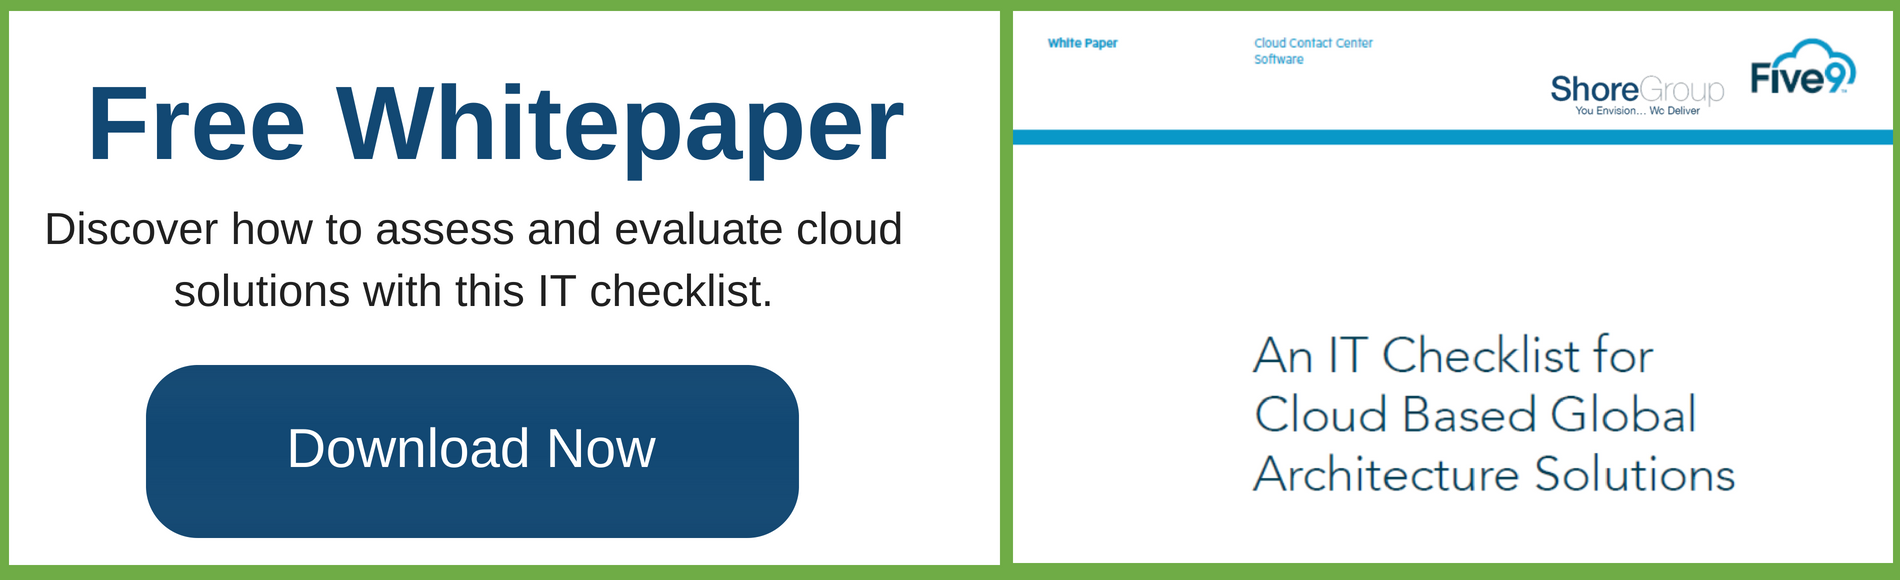 An  IT Checklist for Cloud Based Global Architecture Solutions